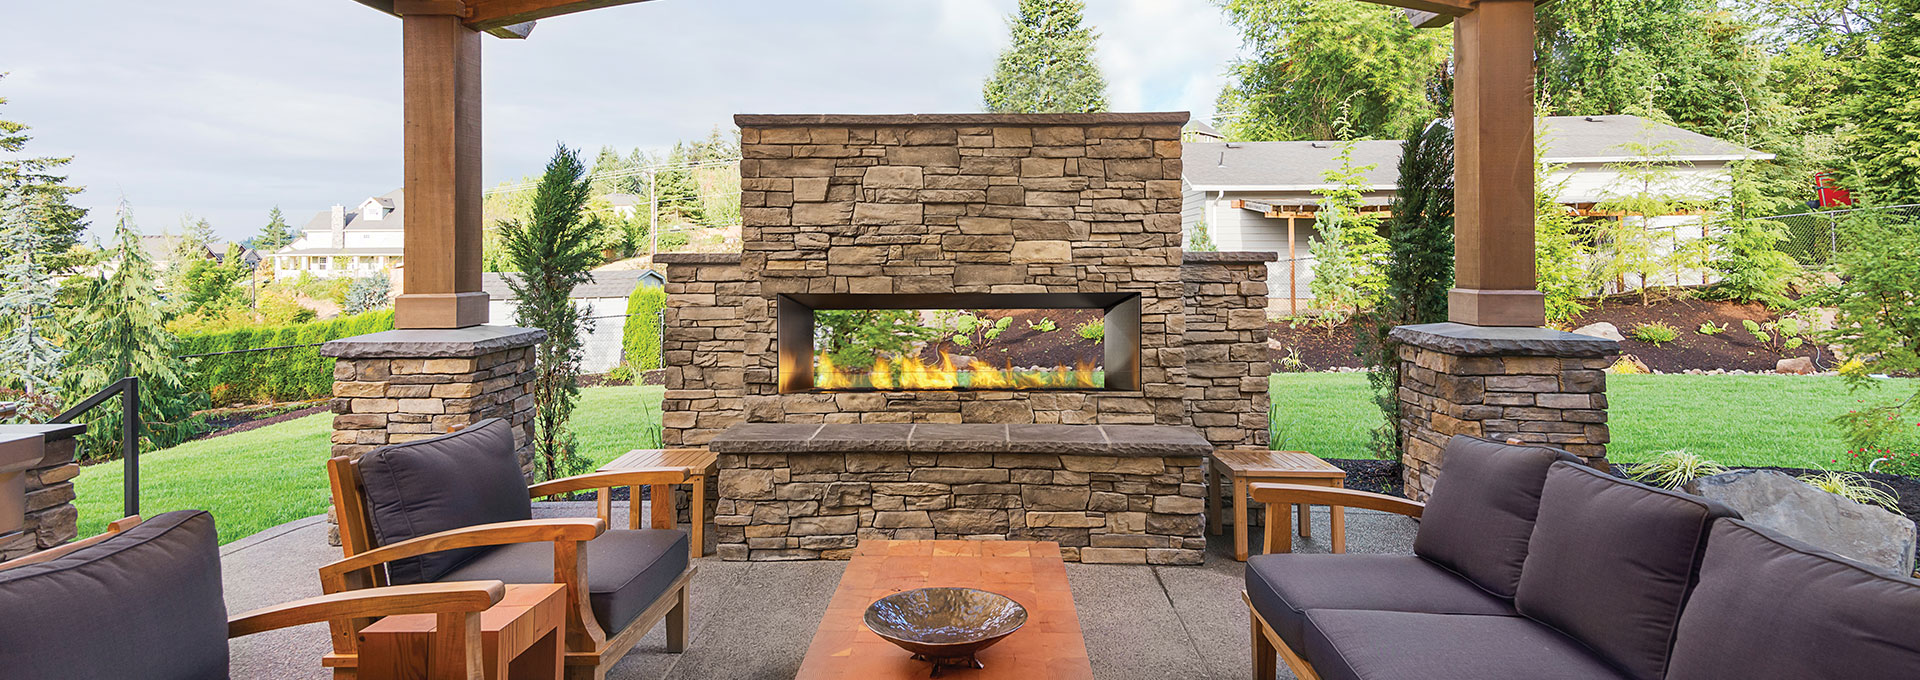 Large Outdoor Gas Fireplace